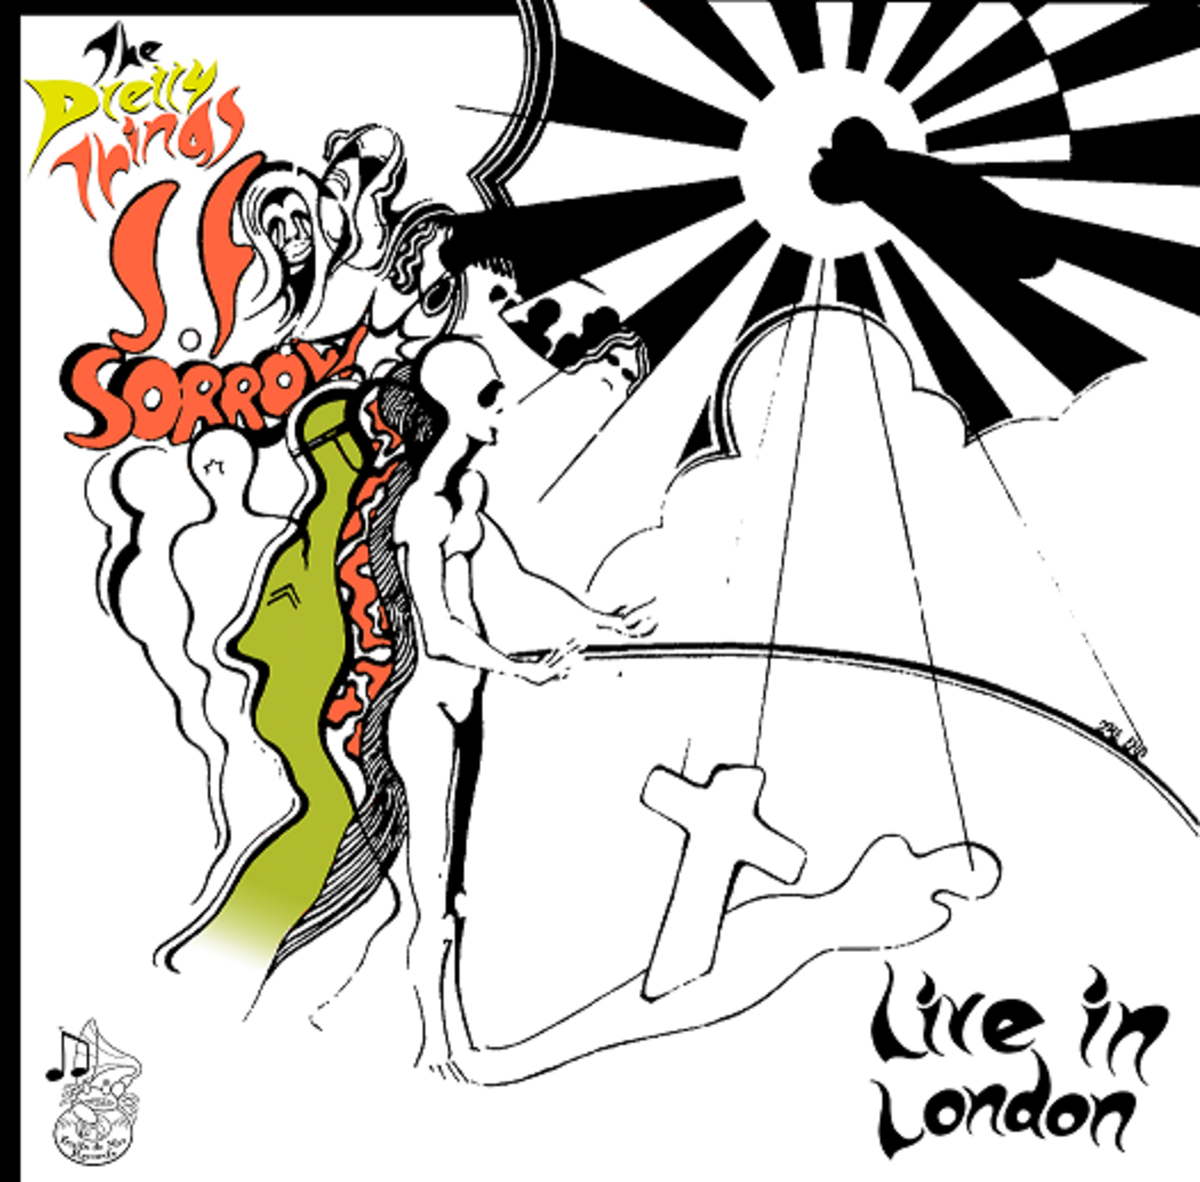 pretty things live in london s.f. sorrorw fruits de mer records